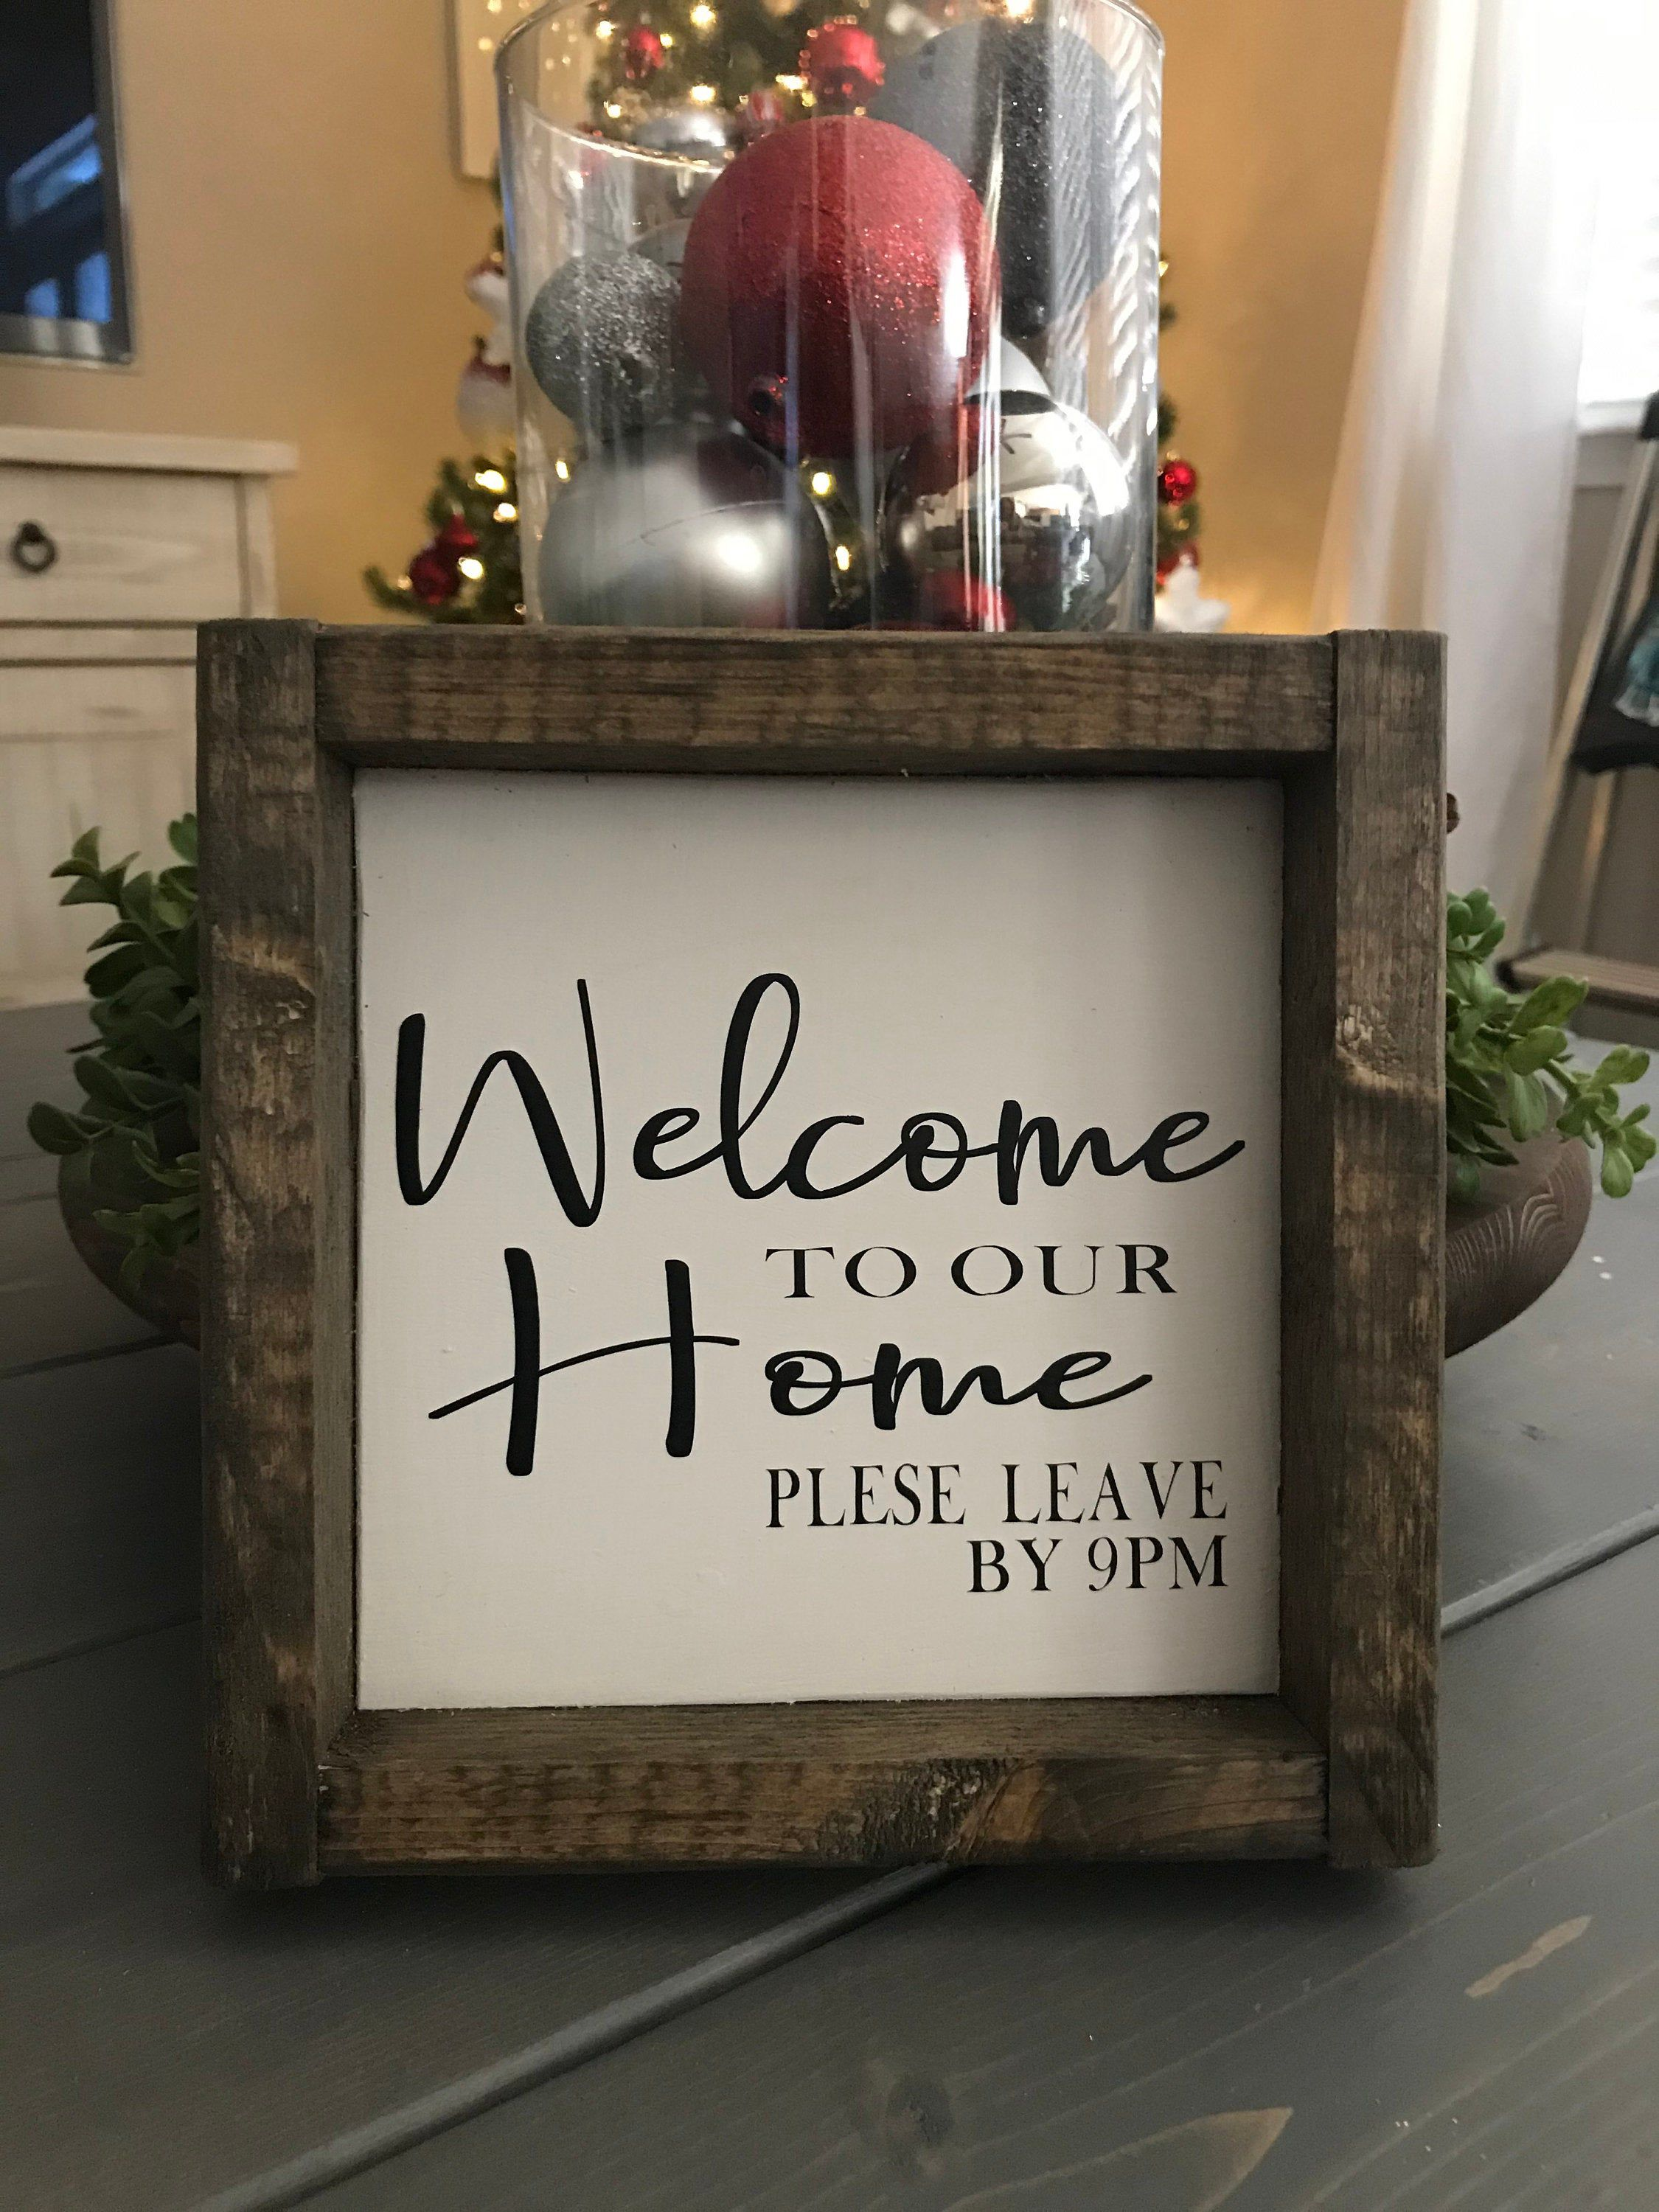 Small 7 5x 7 5 Welcome To Our Home Please Leave By 9 Wood Farmhouse Sign Entry Wall Decor Front Door Decor Funny Sign Gift In 2020 With Images Front Door Decor Entry Wall Wood Gifts Diy